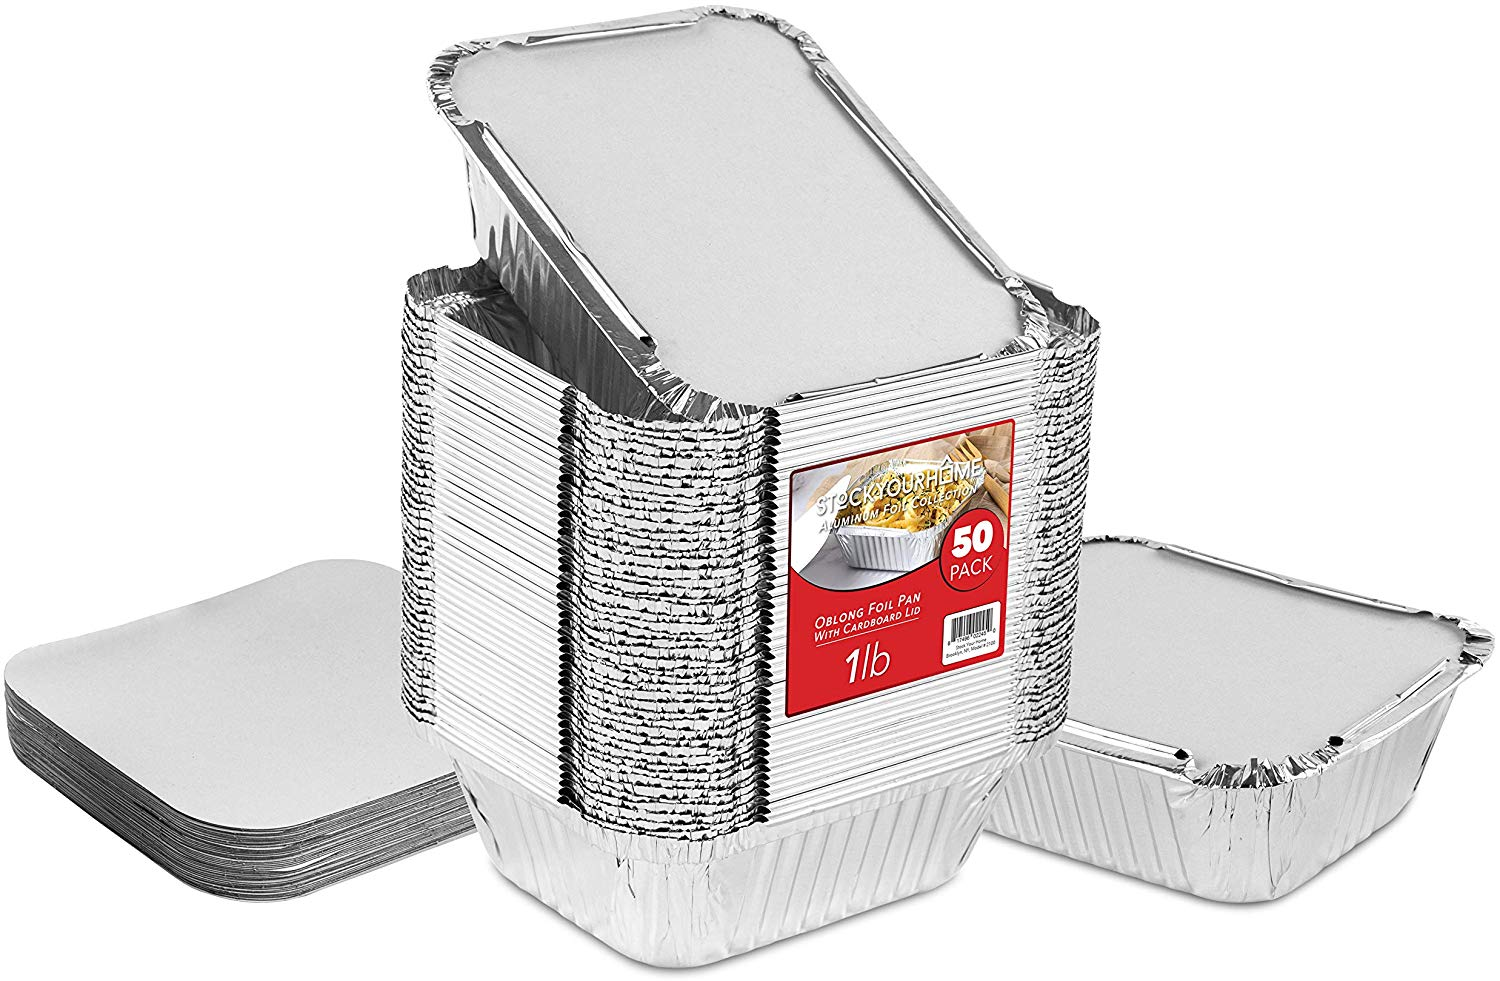 Stock Your Home 50 Pack Disposable Takeout Containers